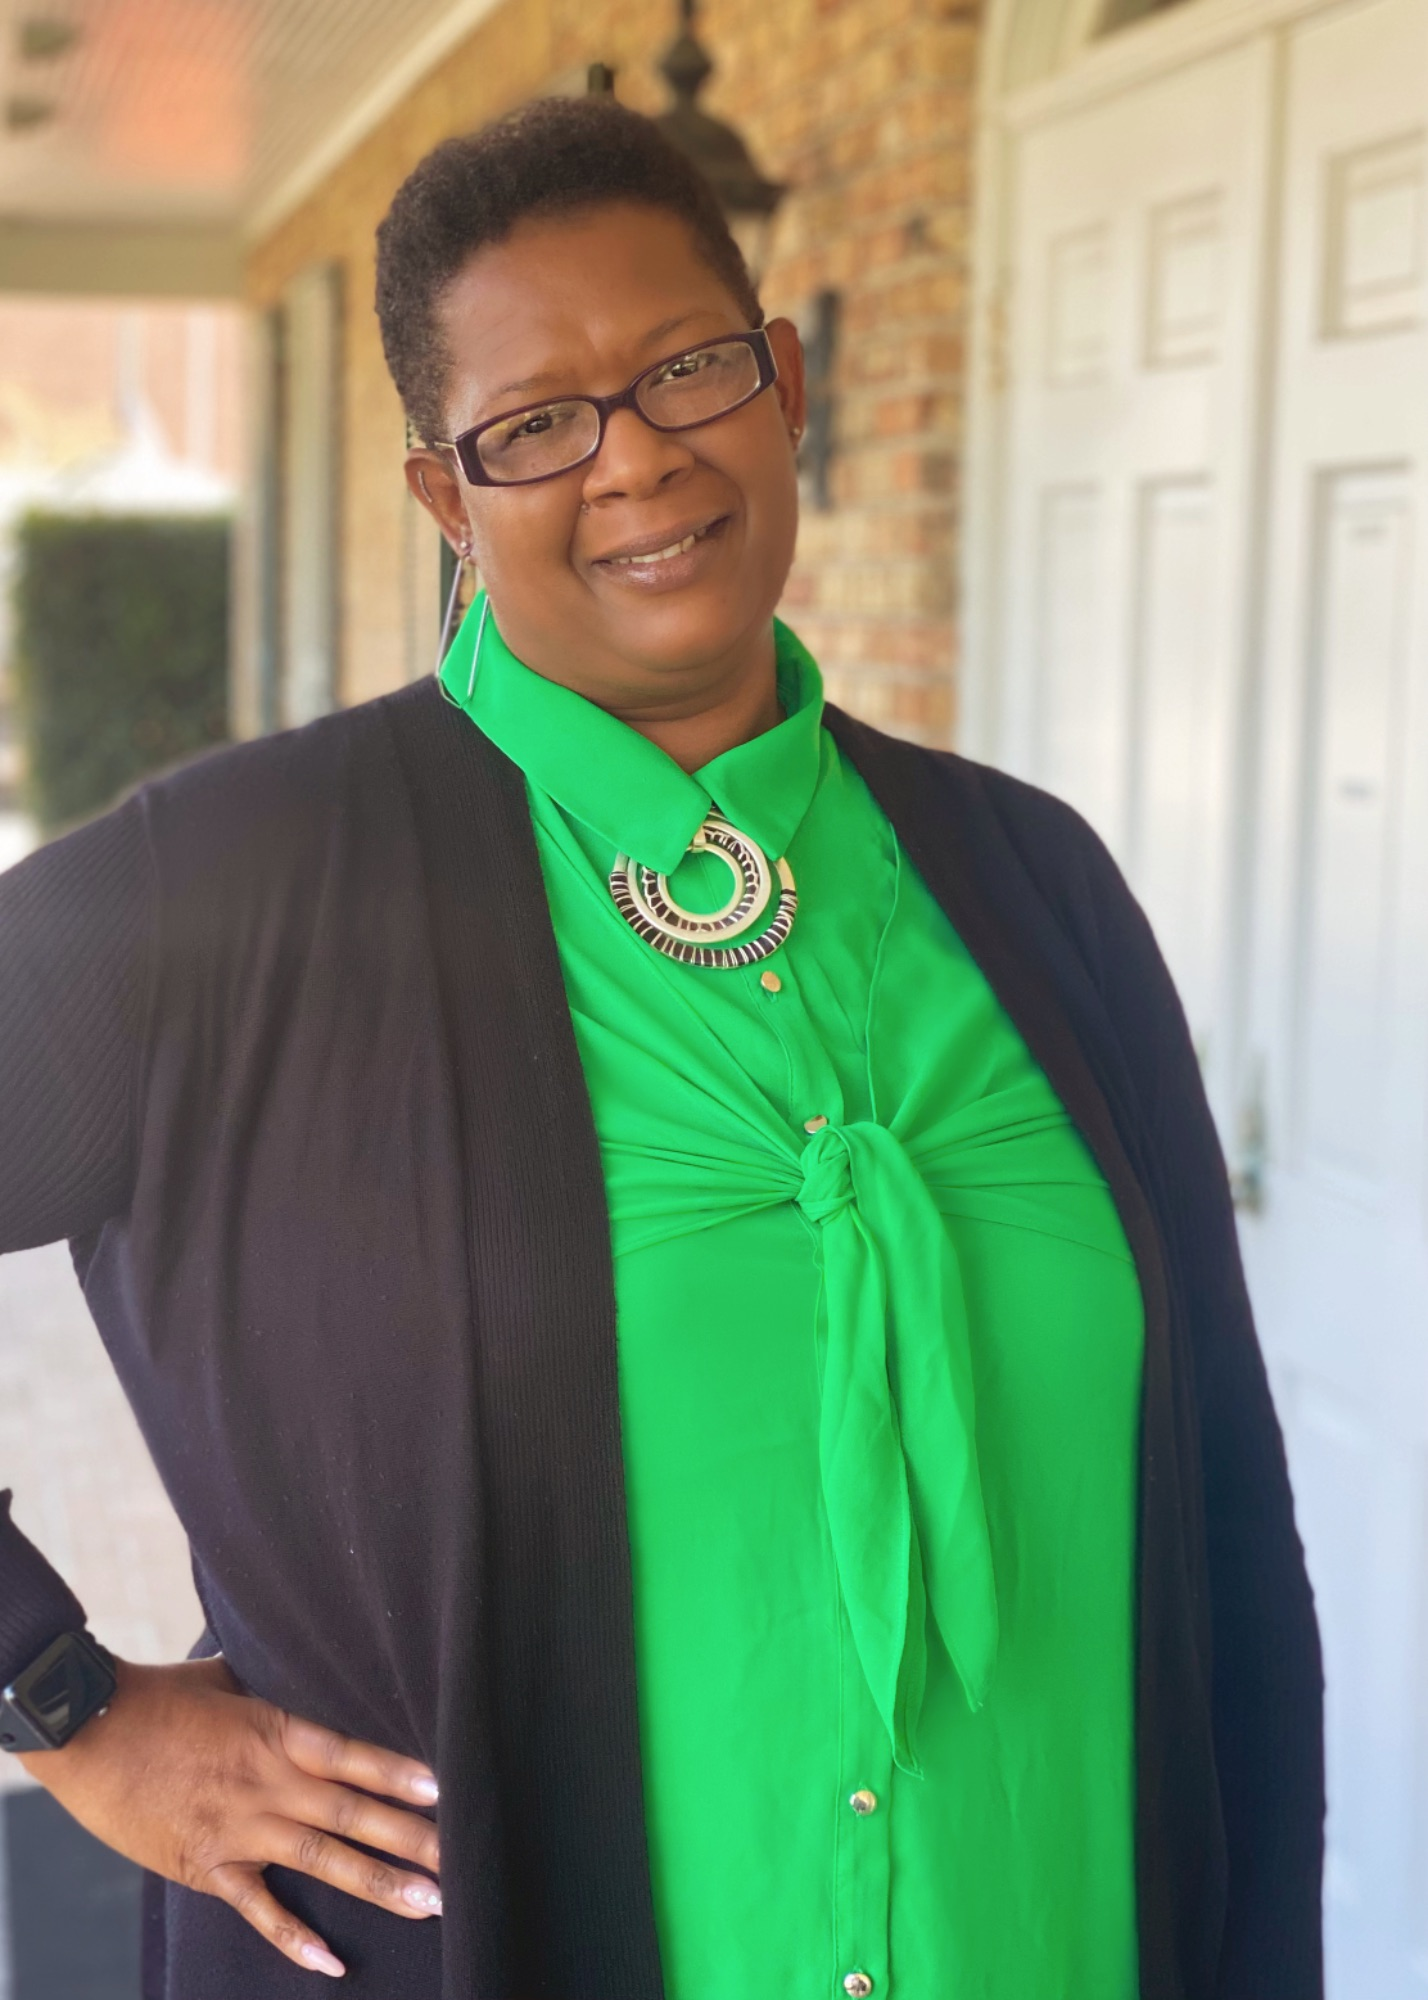 Photo of Tanya Green - Administrative Assistant